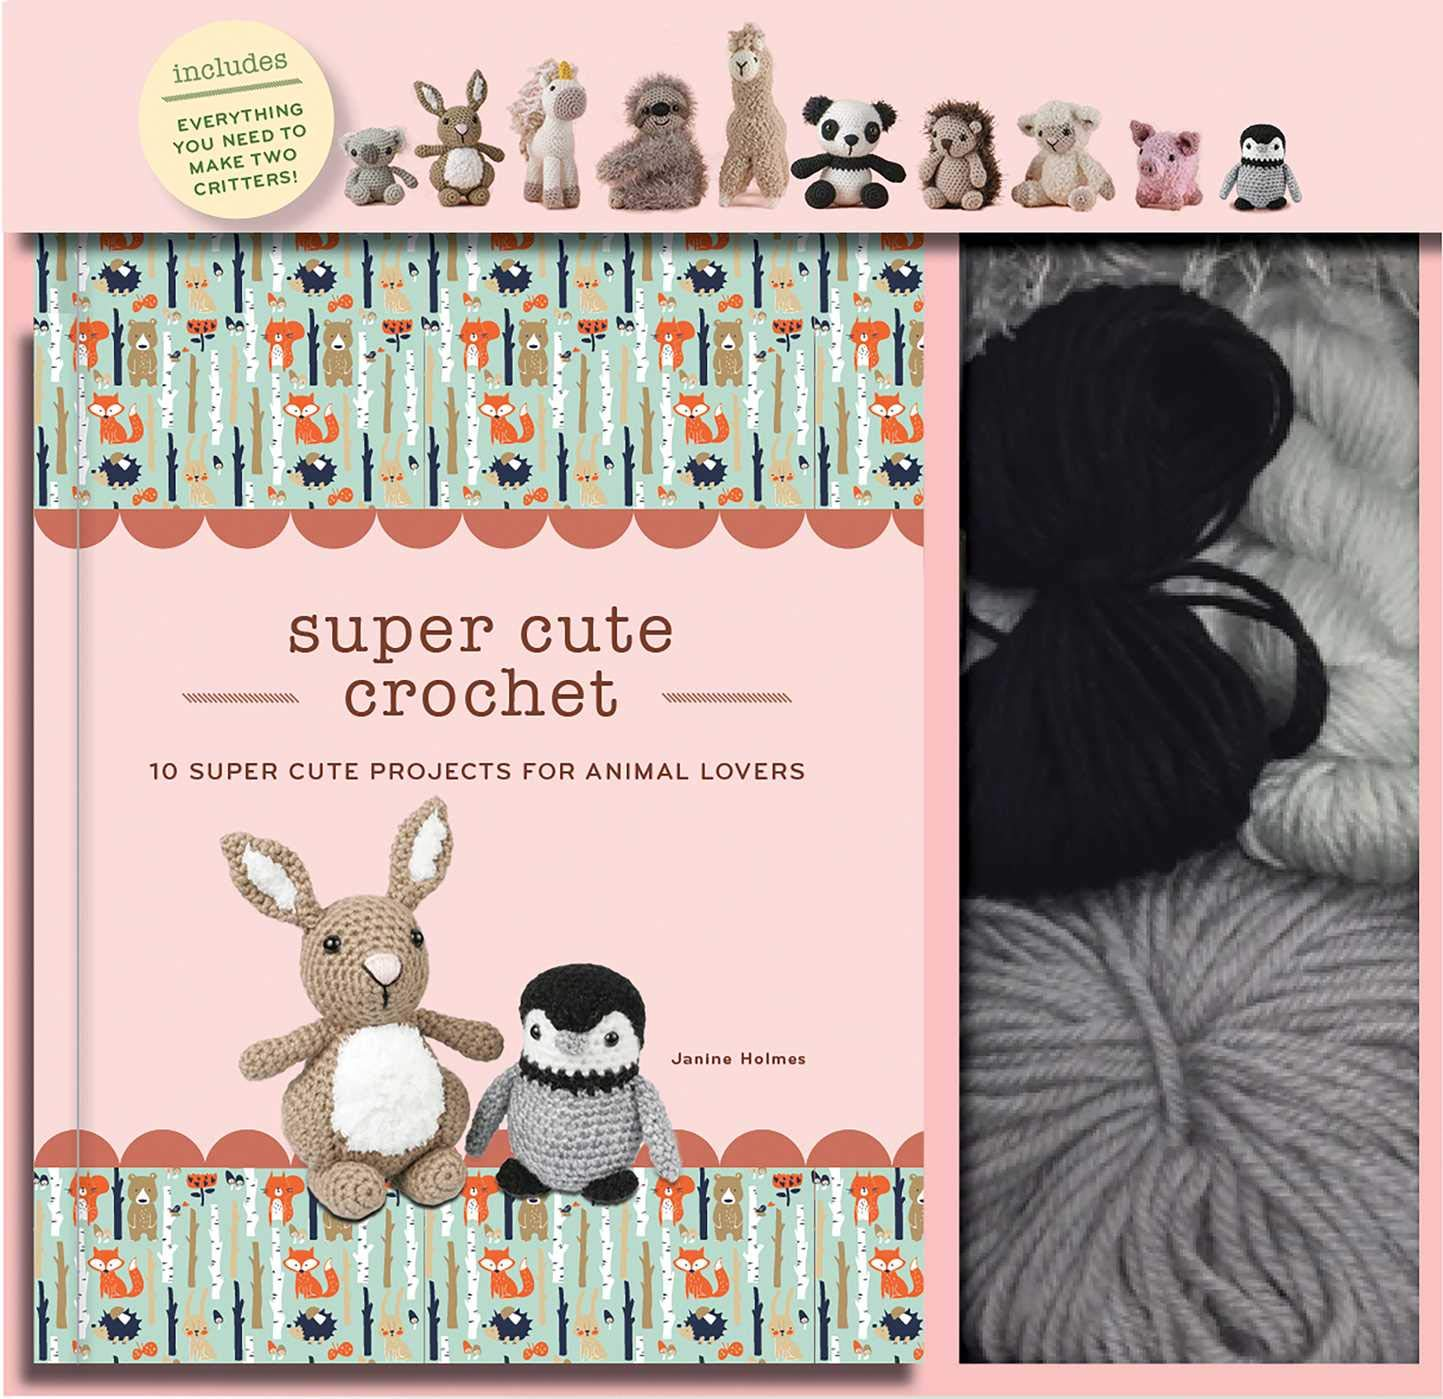 Super Cute Crochet: 10 Super Cute Projects for Animal Lovers by Janine Holmes